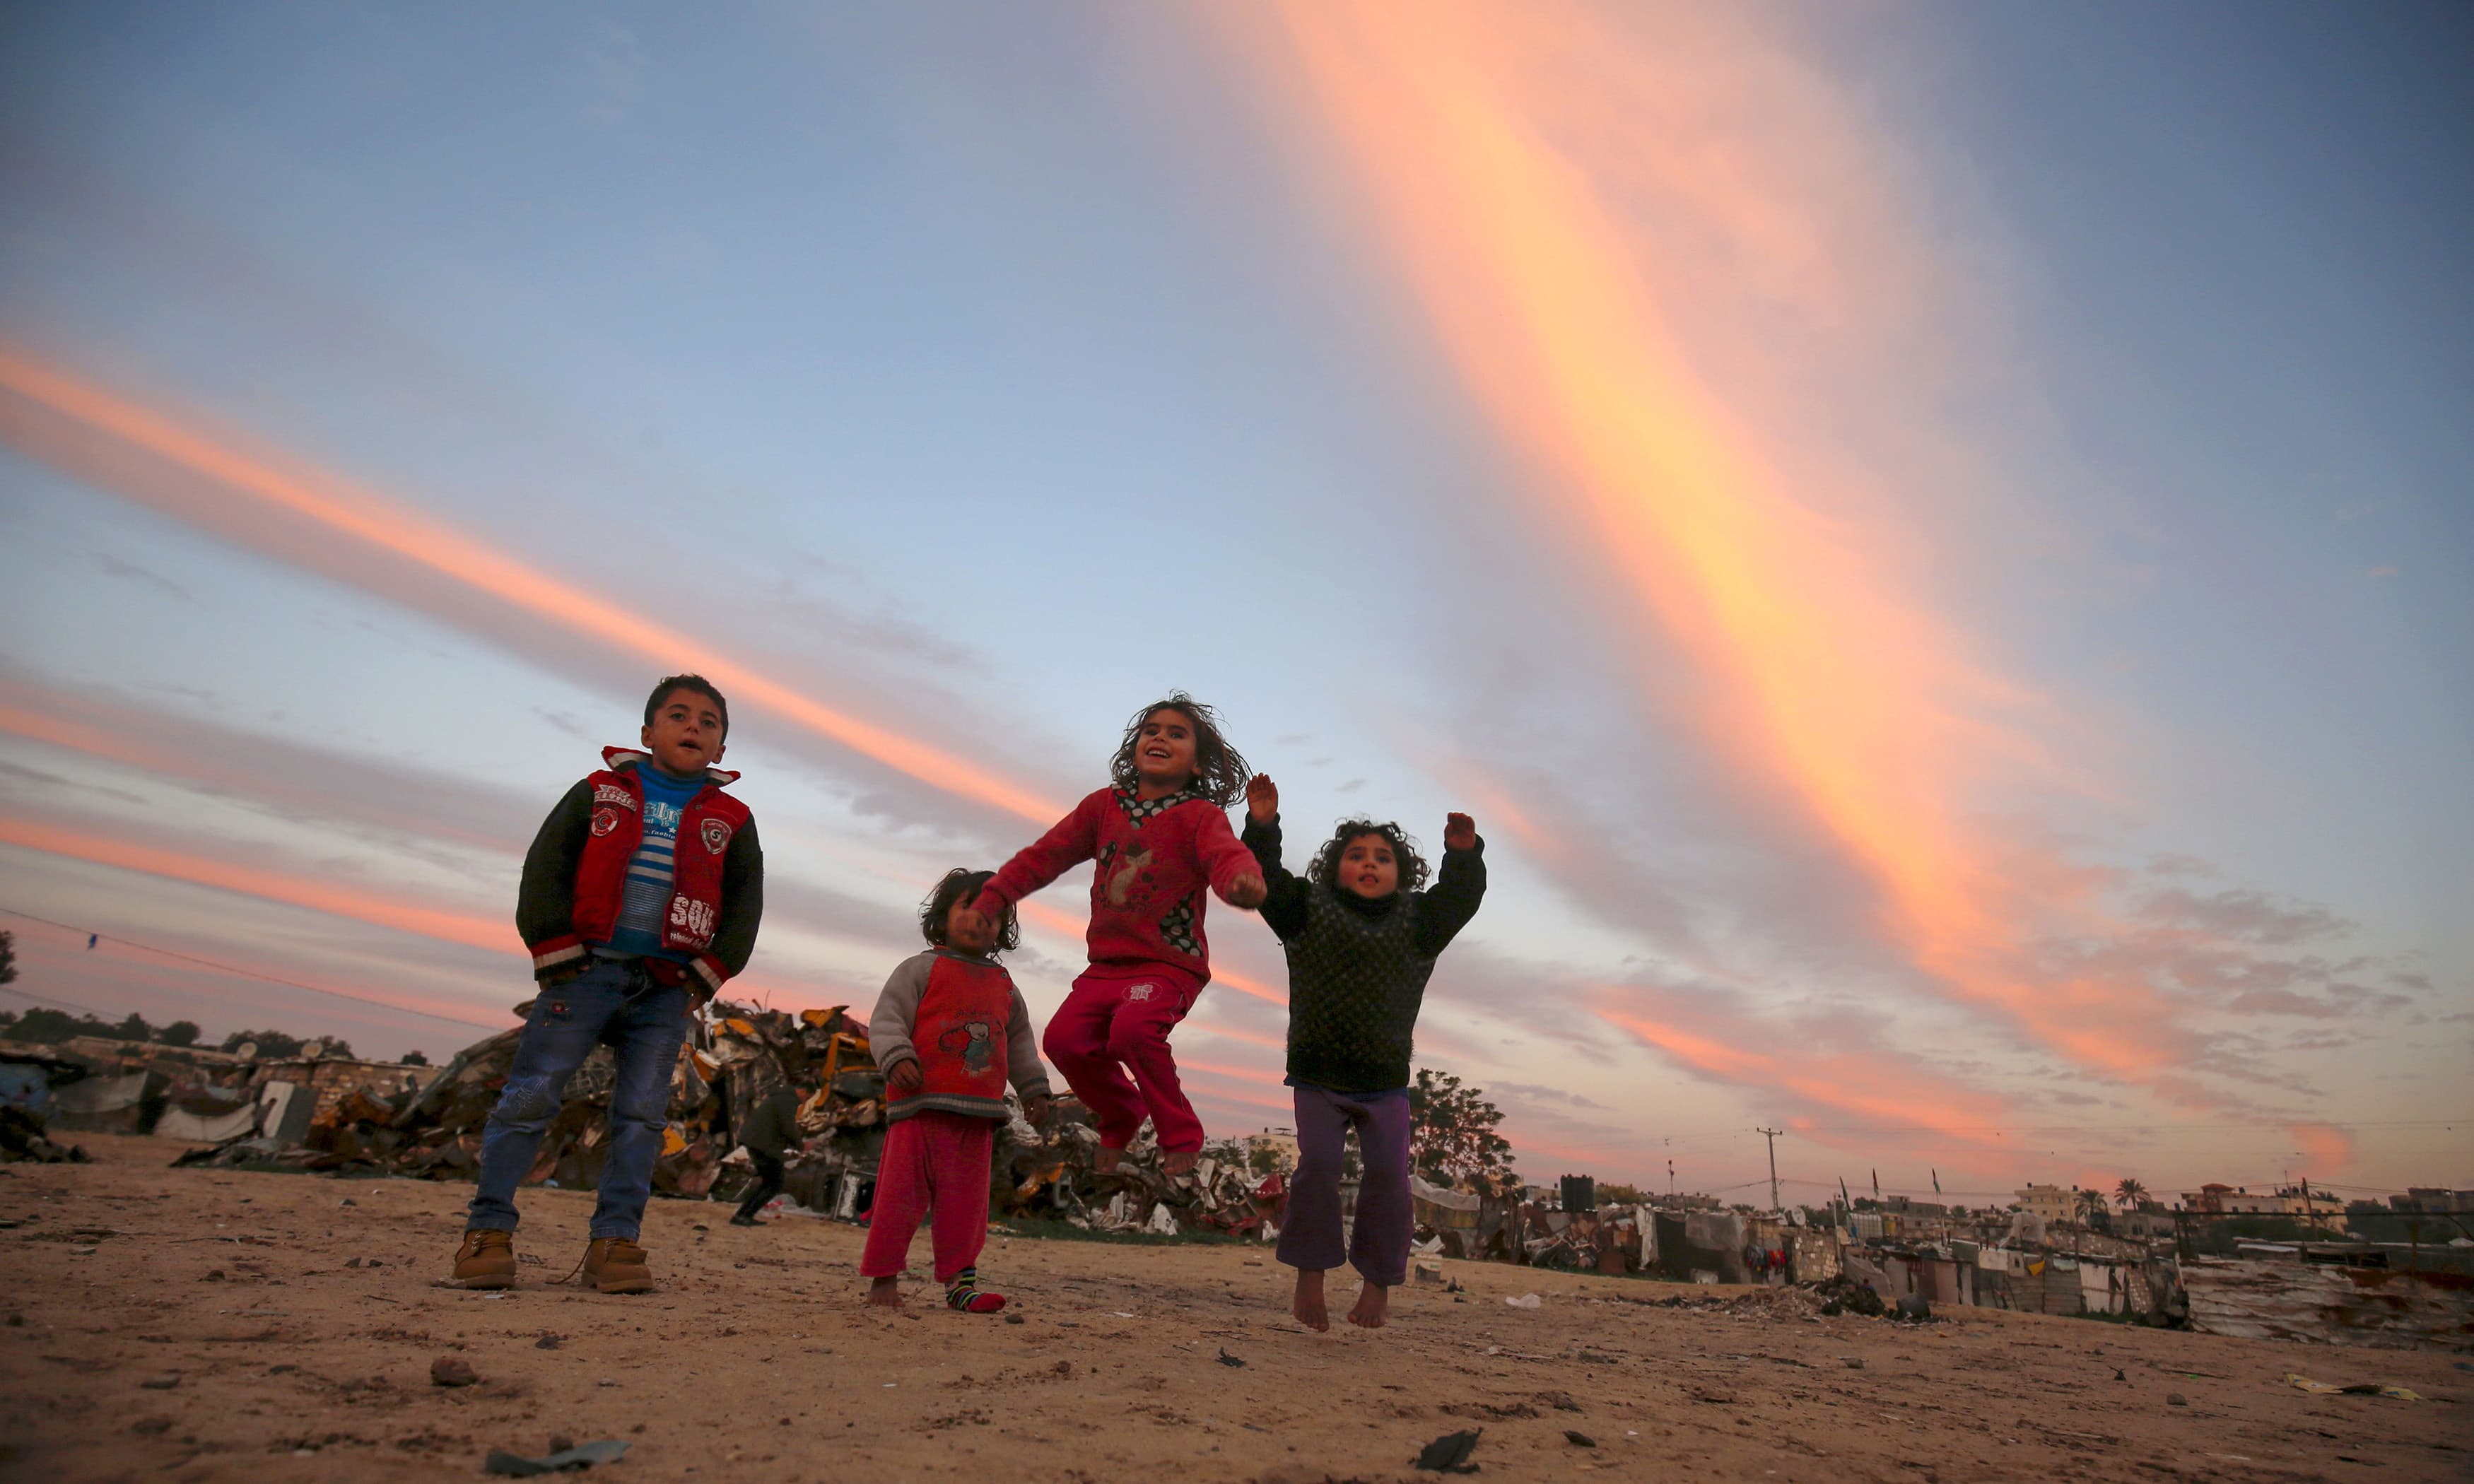 Palestinian children play at a refugee camp in Khan Yunis in the southern Gaza Strip. —AFP